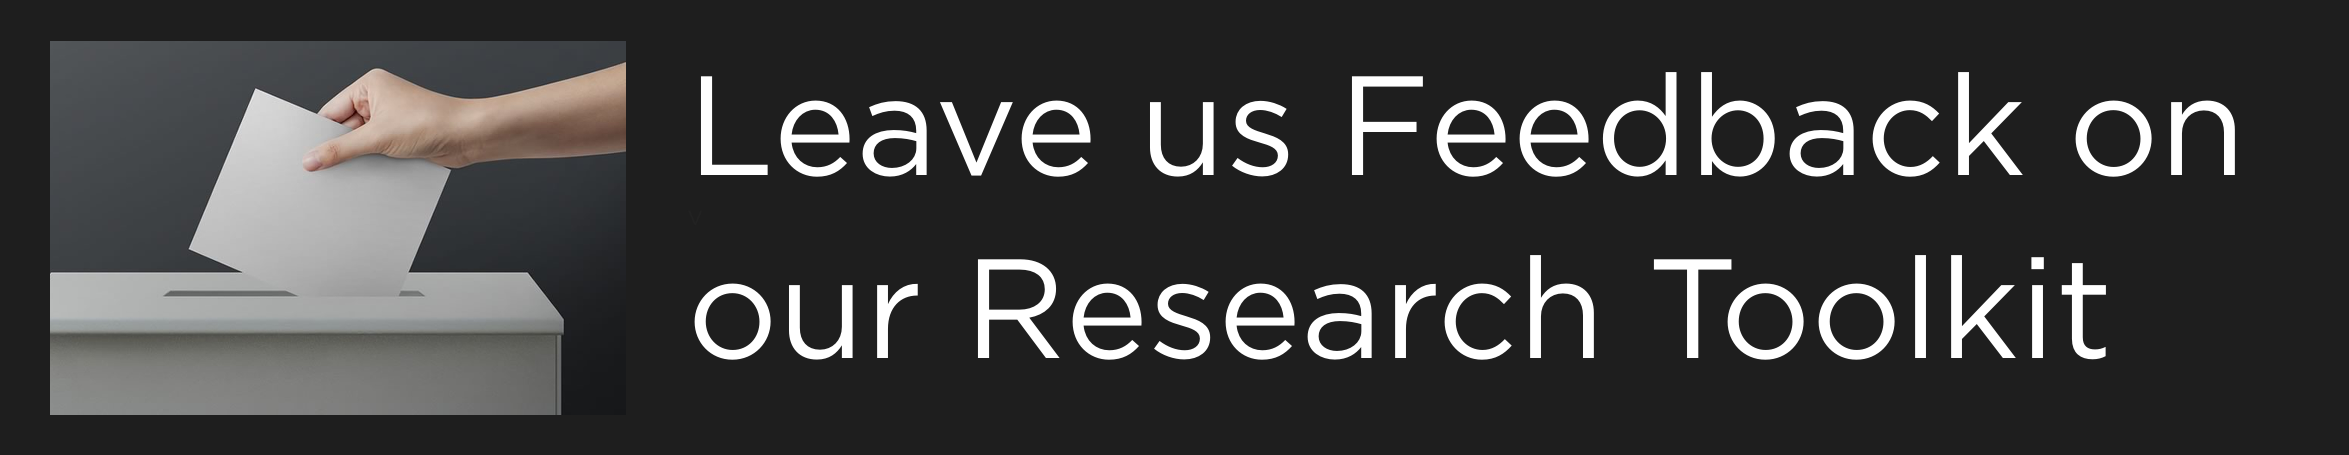 Leave us Feedback on our Research Toolkit button